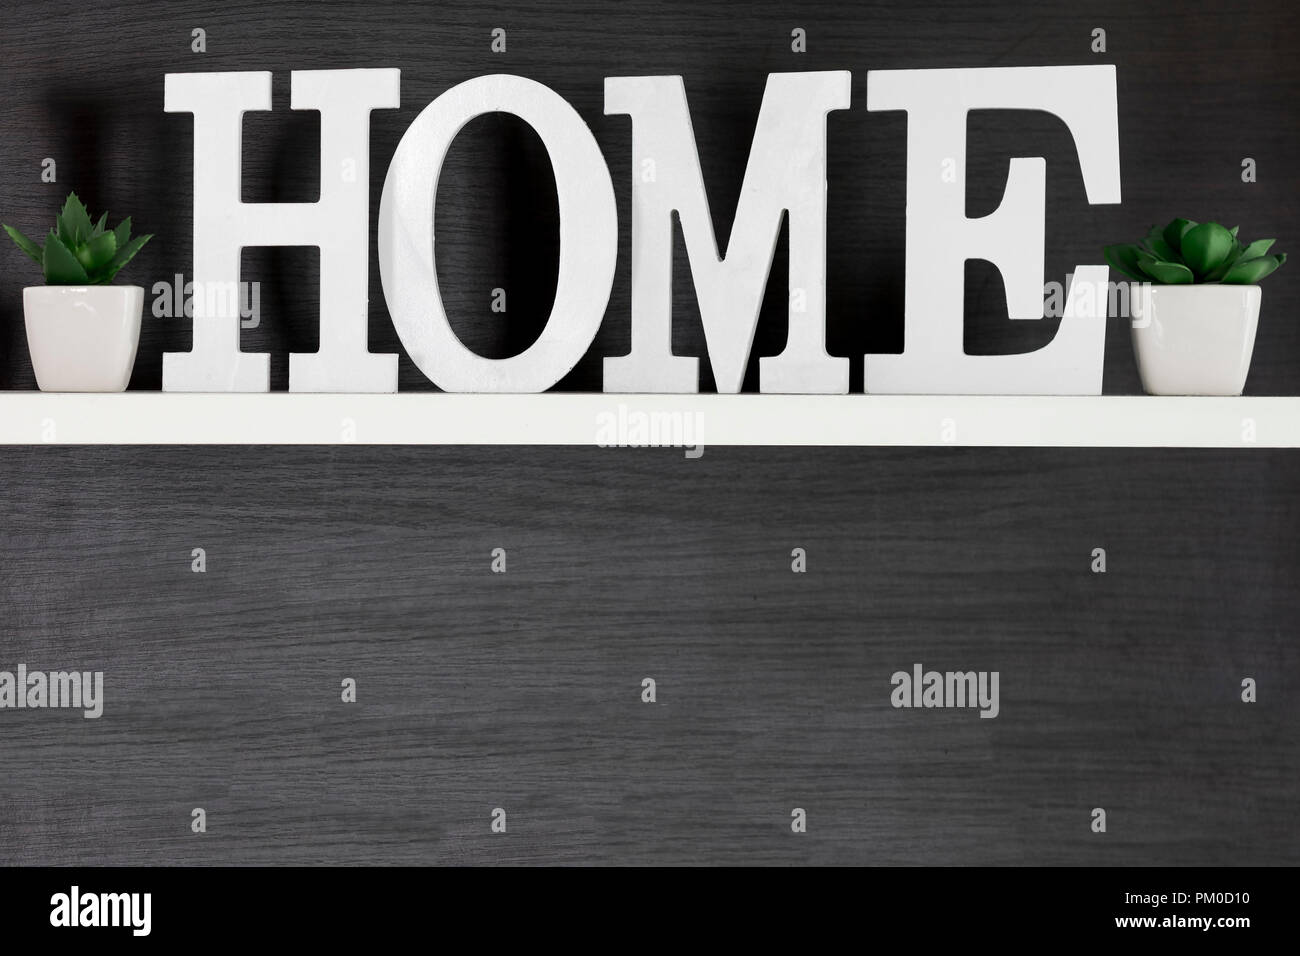 Home letters decor on white shelf with dark wood background, copy space - Stock Image